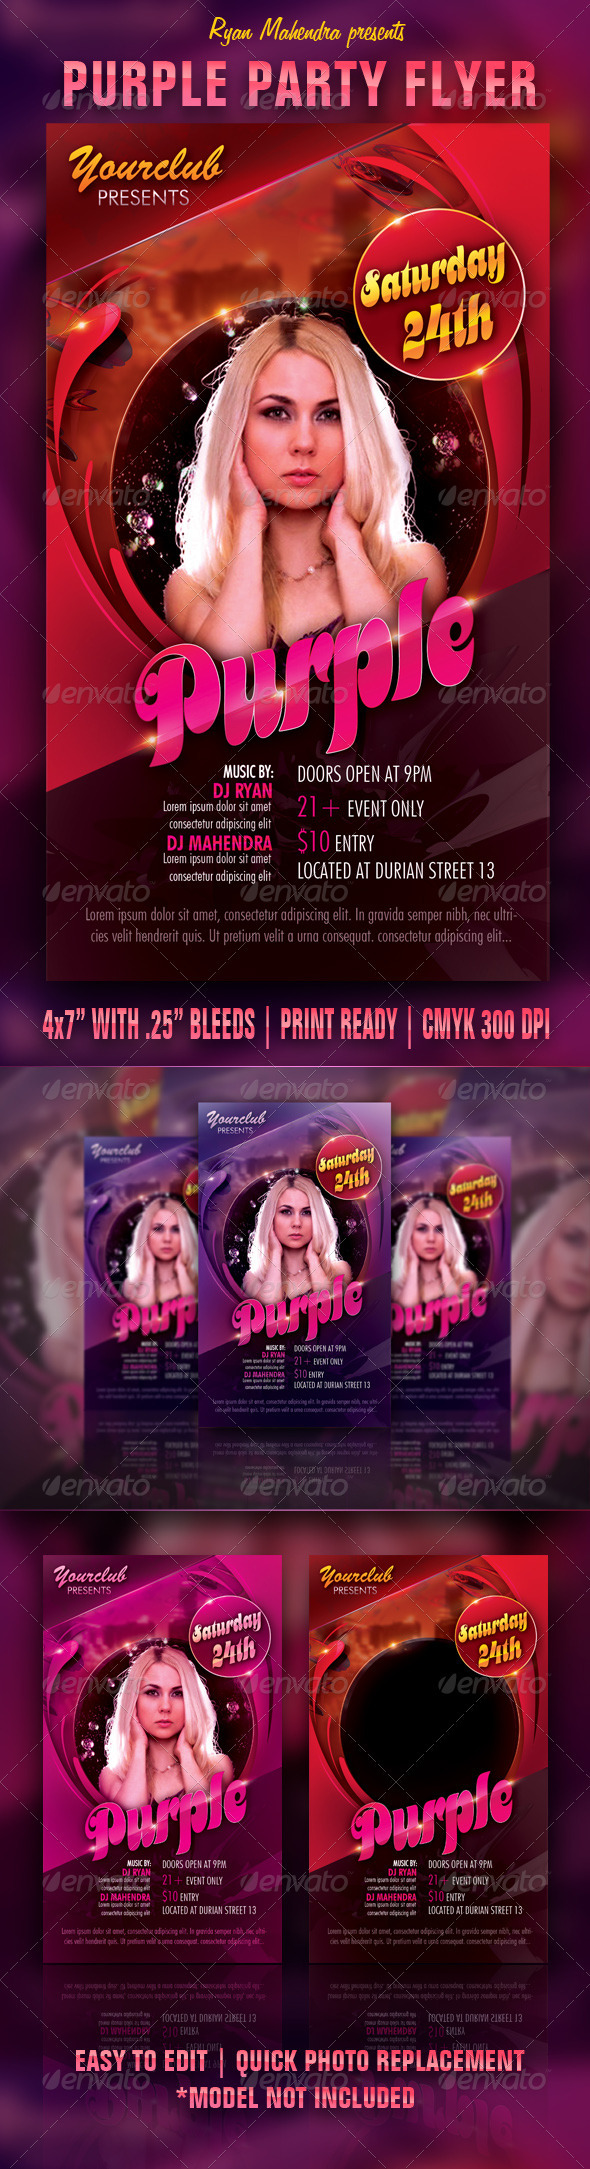 Purple Party Flyer - Clubs & Parties Events